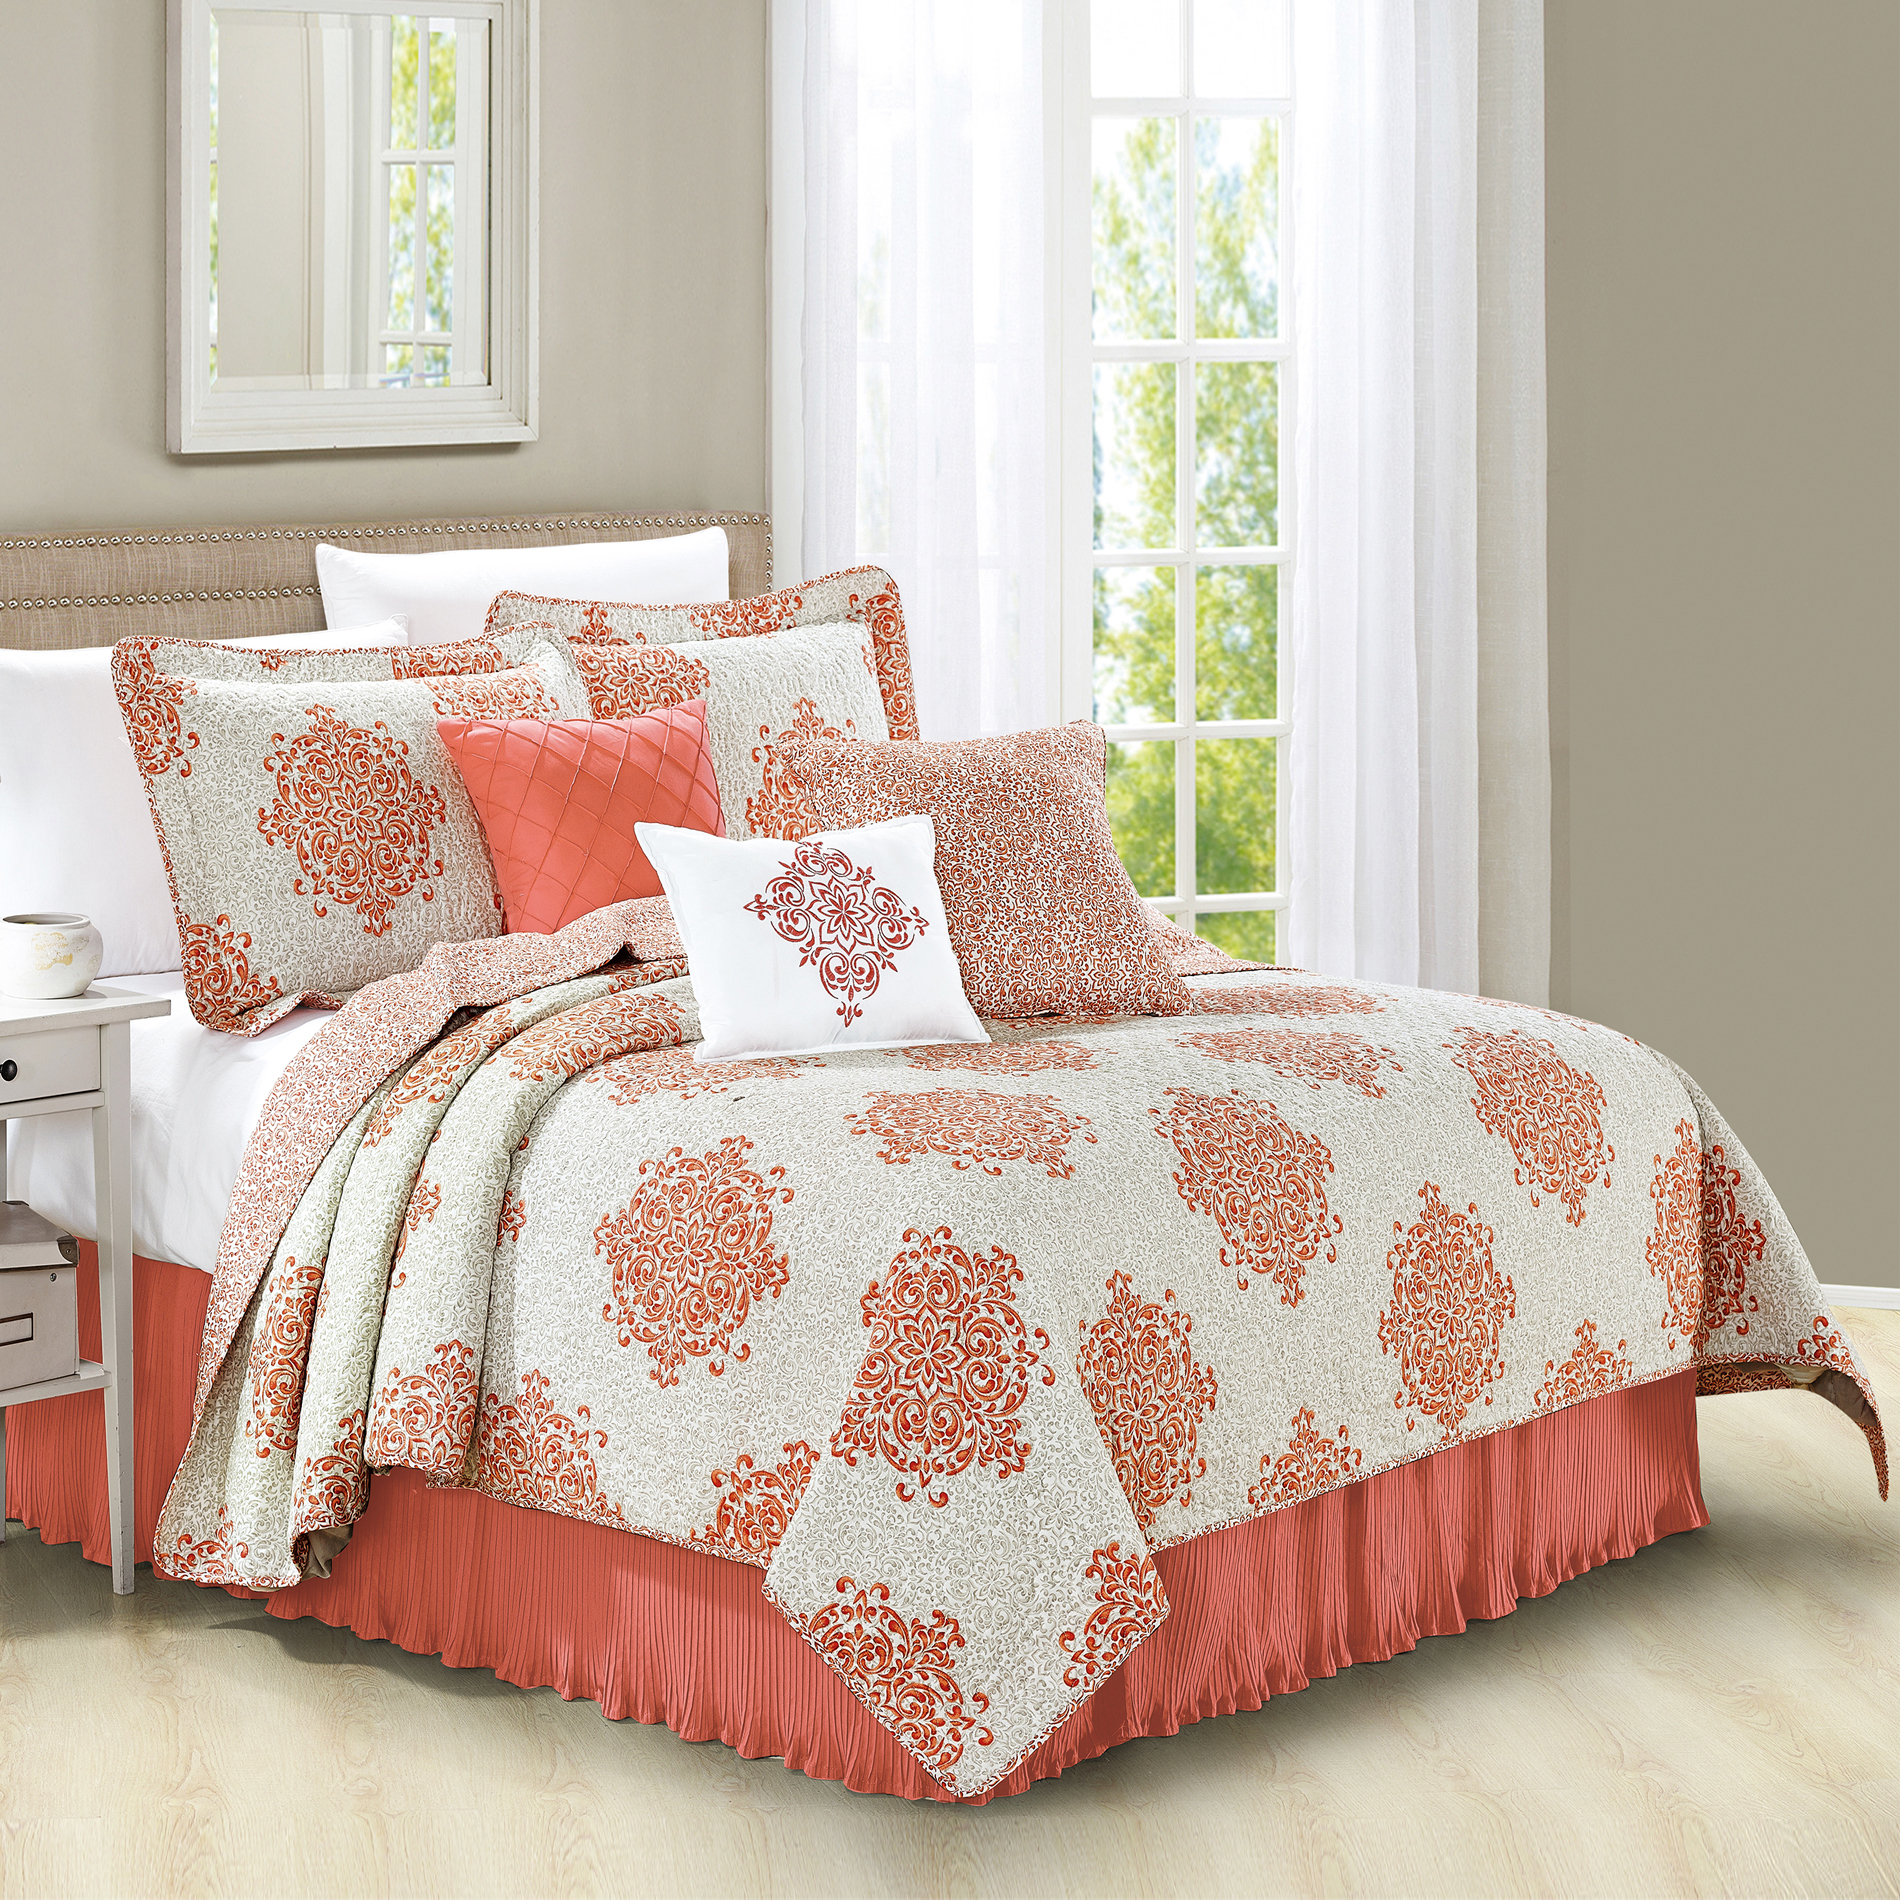 Serenta Chelsea 6 Piece Printed Quilted Microfiber Coverlet Bed Spread Set